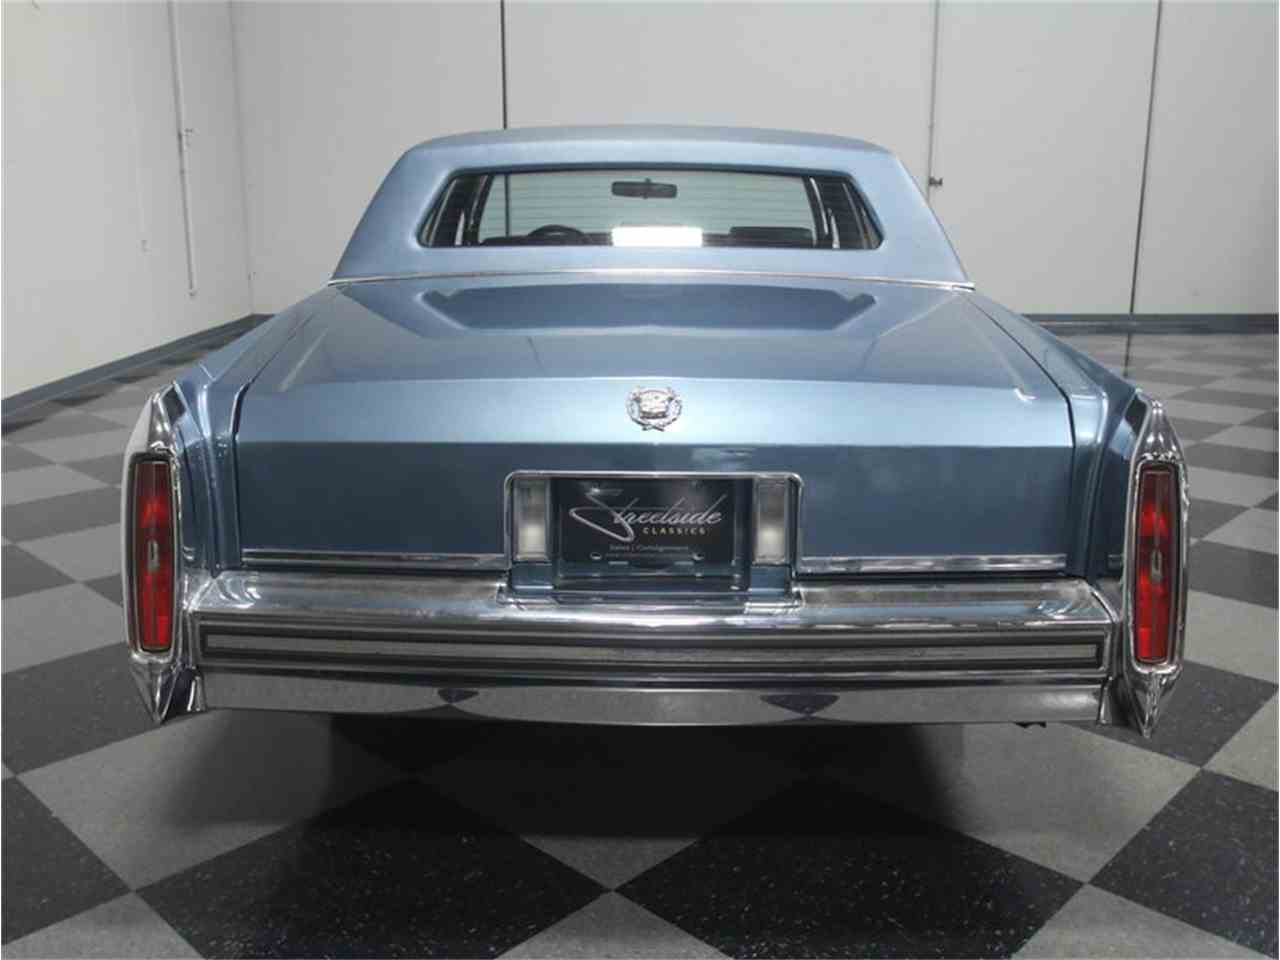 Large Picture of '86 Cadillac Fleetwood Brougham - $8,995.00 - LHHW